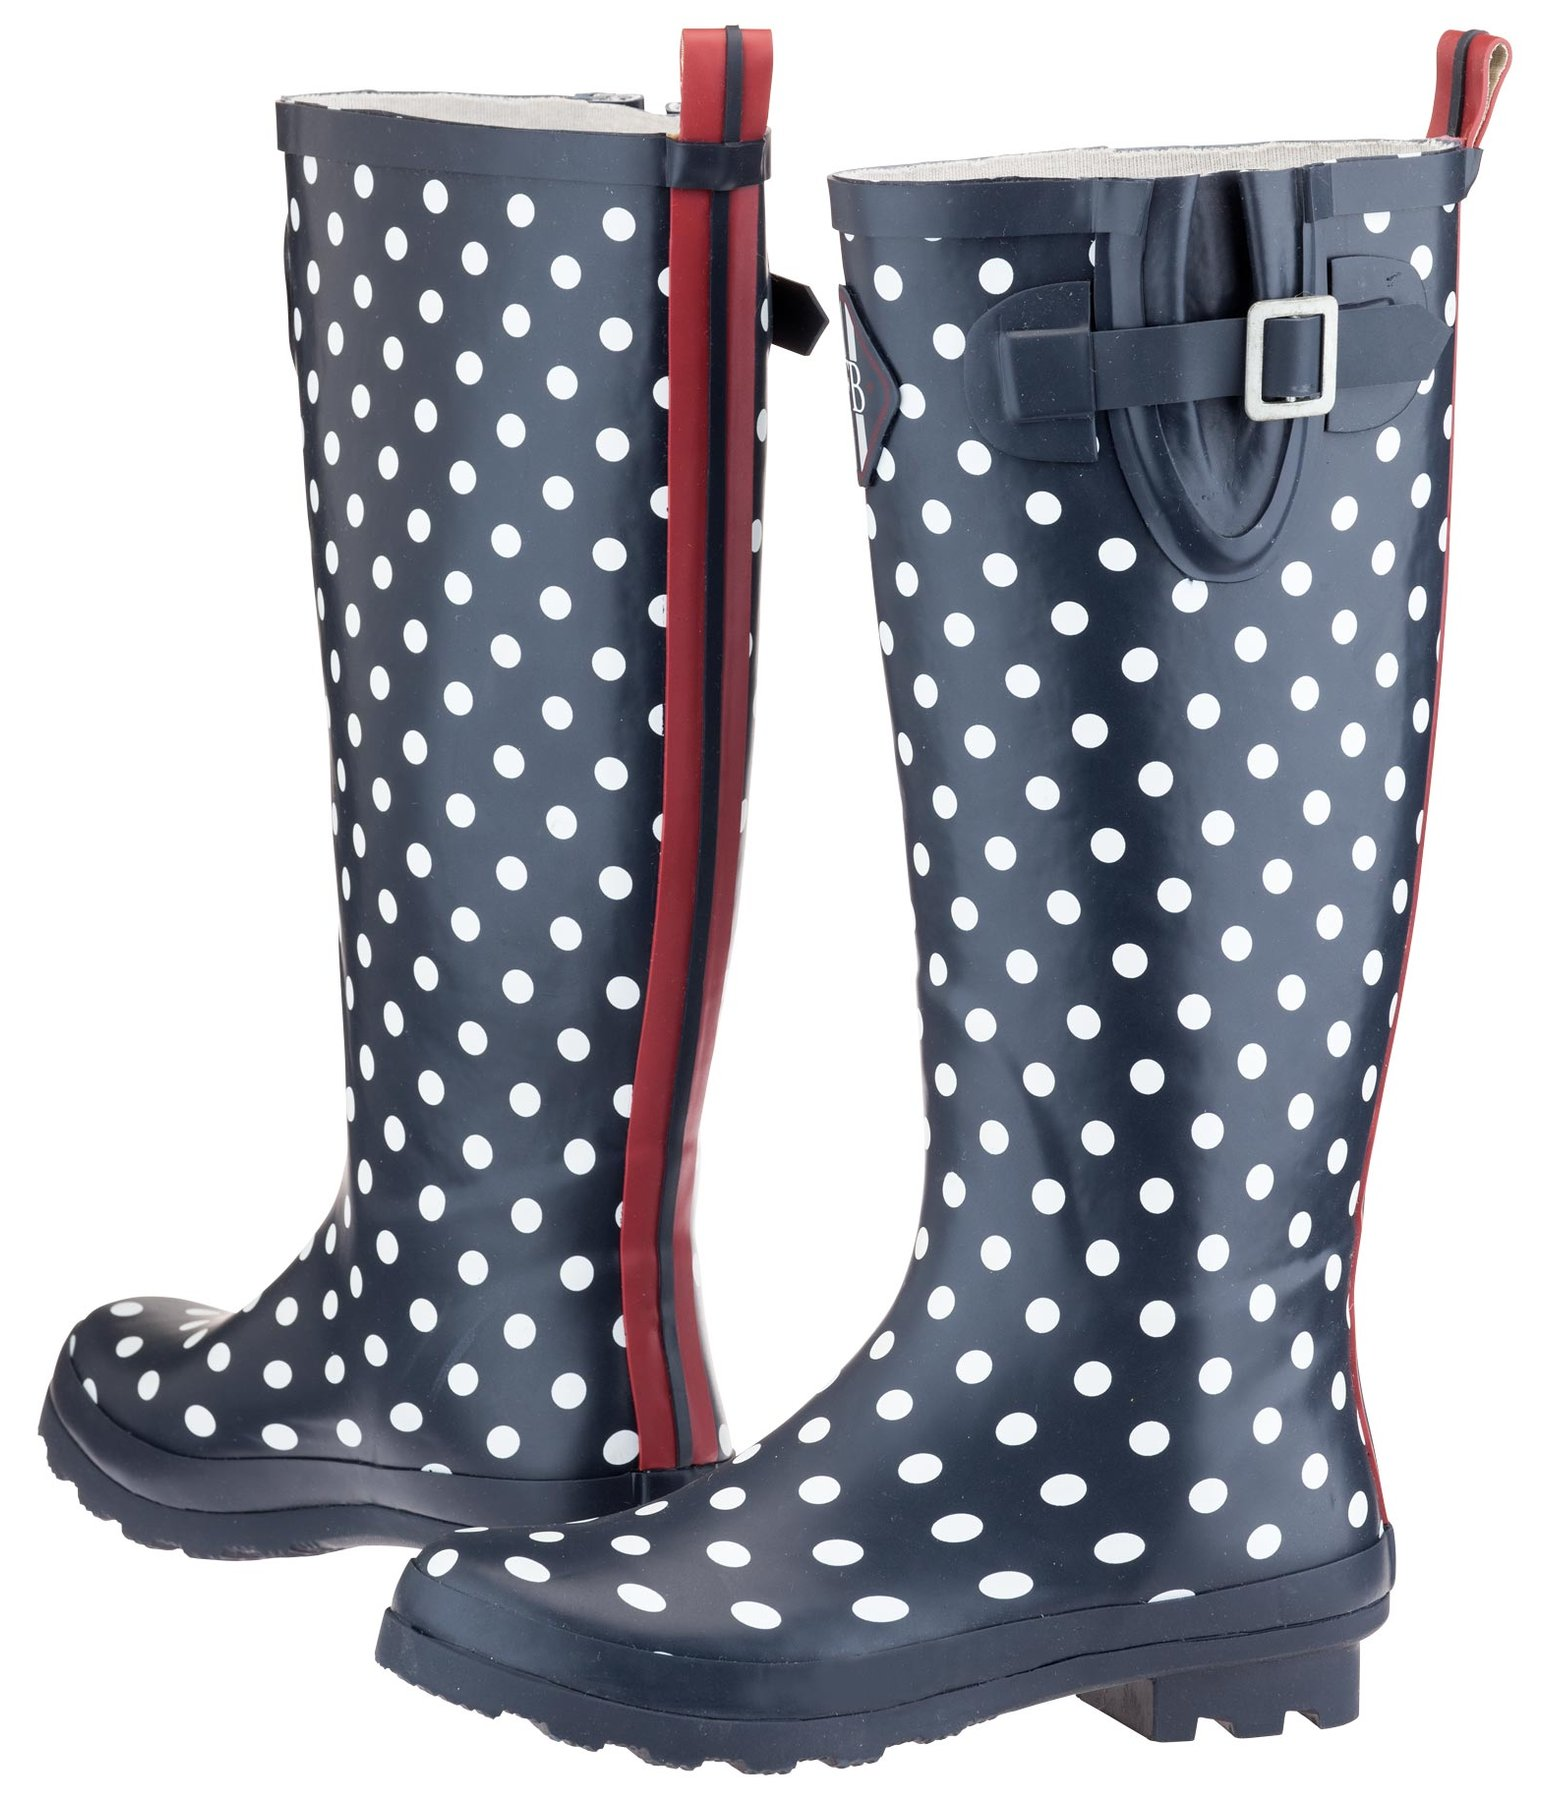 Rubber Boots Arosa